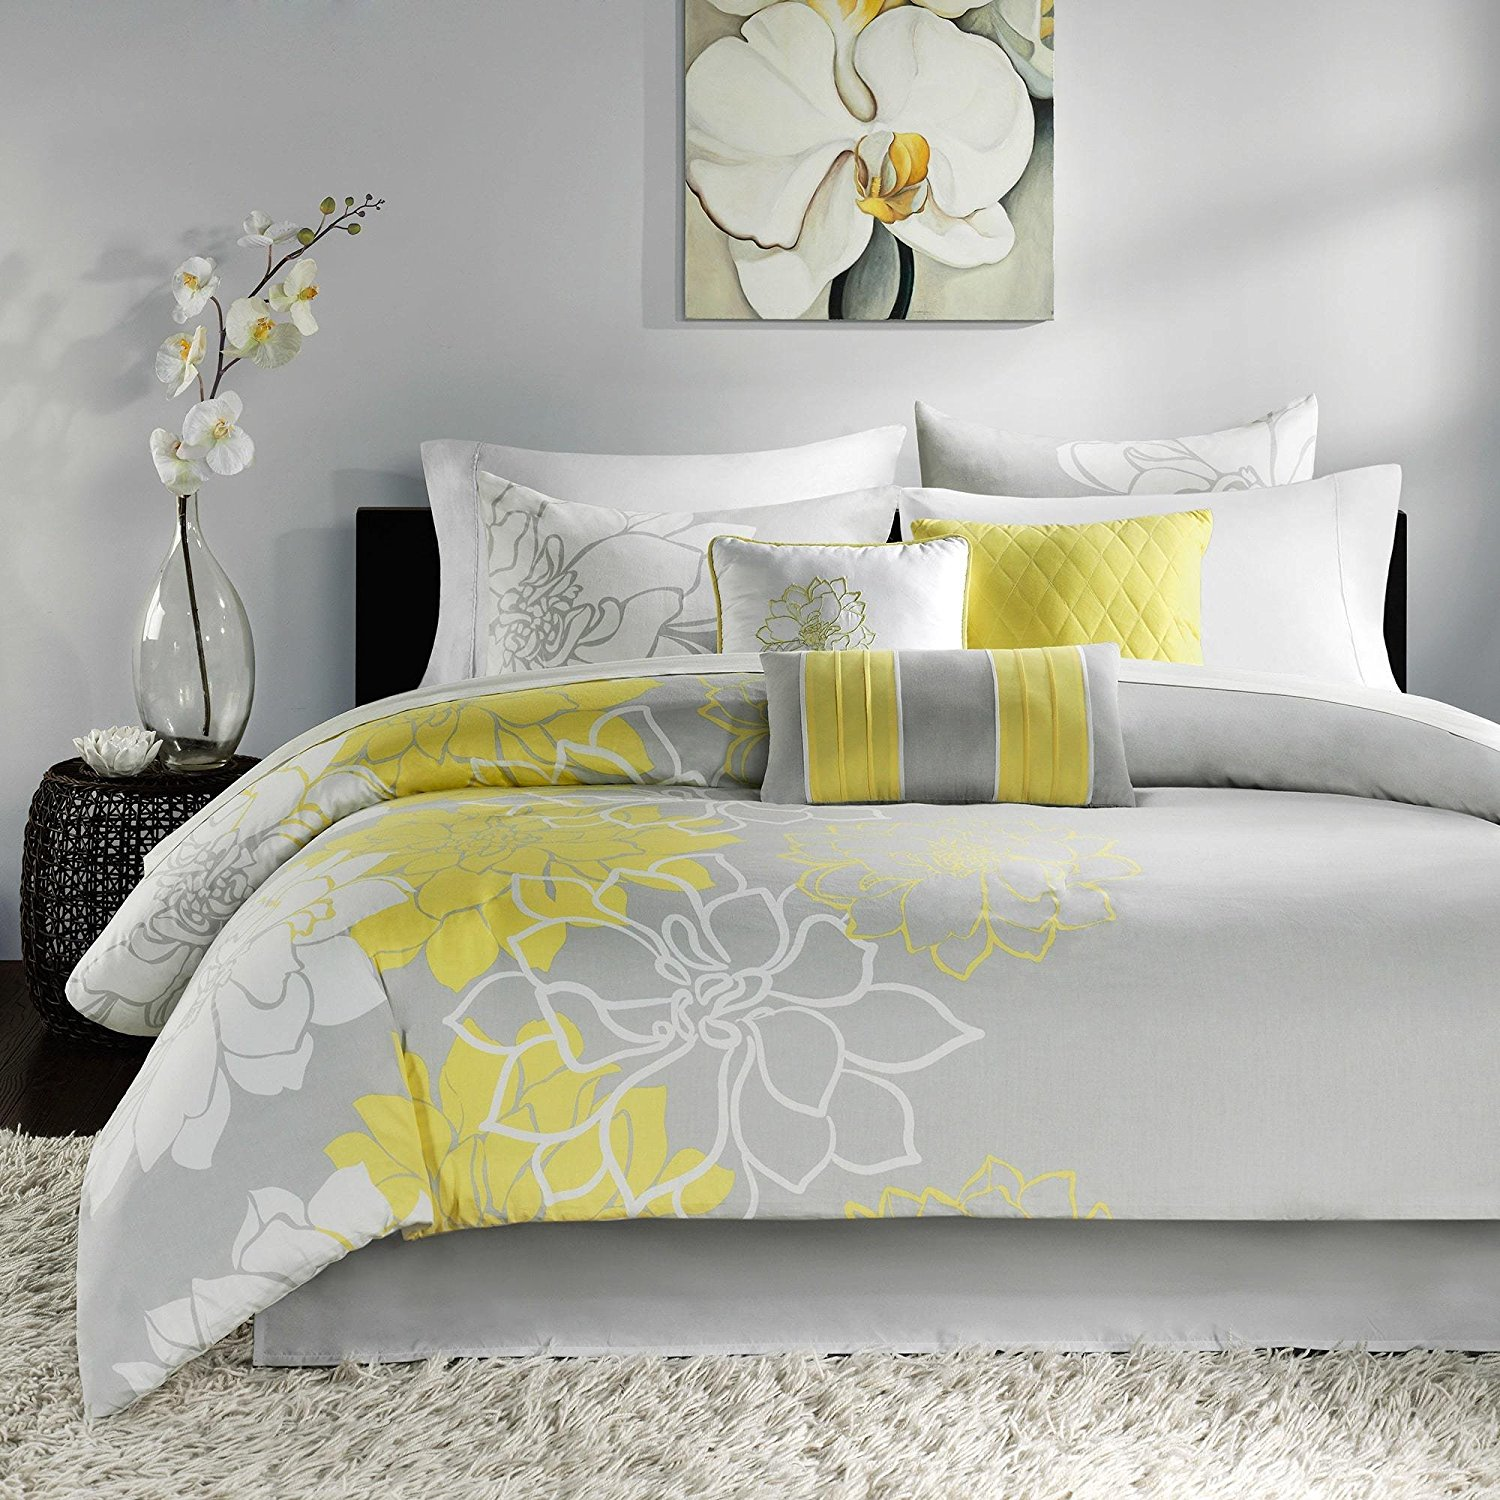 7 Piece Yellow Floral Queen Size Comforter Set, Beautiful Grey Vibrant Flowers Nature, Gray Lily Spring Flower Theme Sleek Modern Shabby Chic Gorgeous Bedding, Cotton Polyester